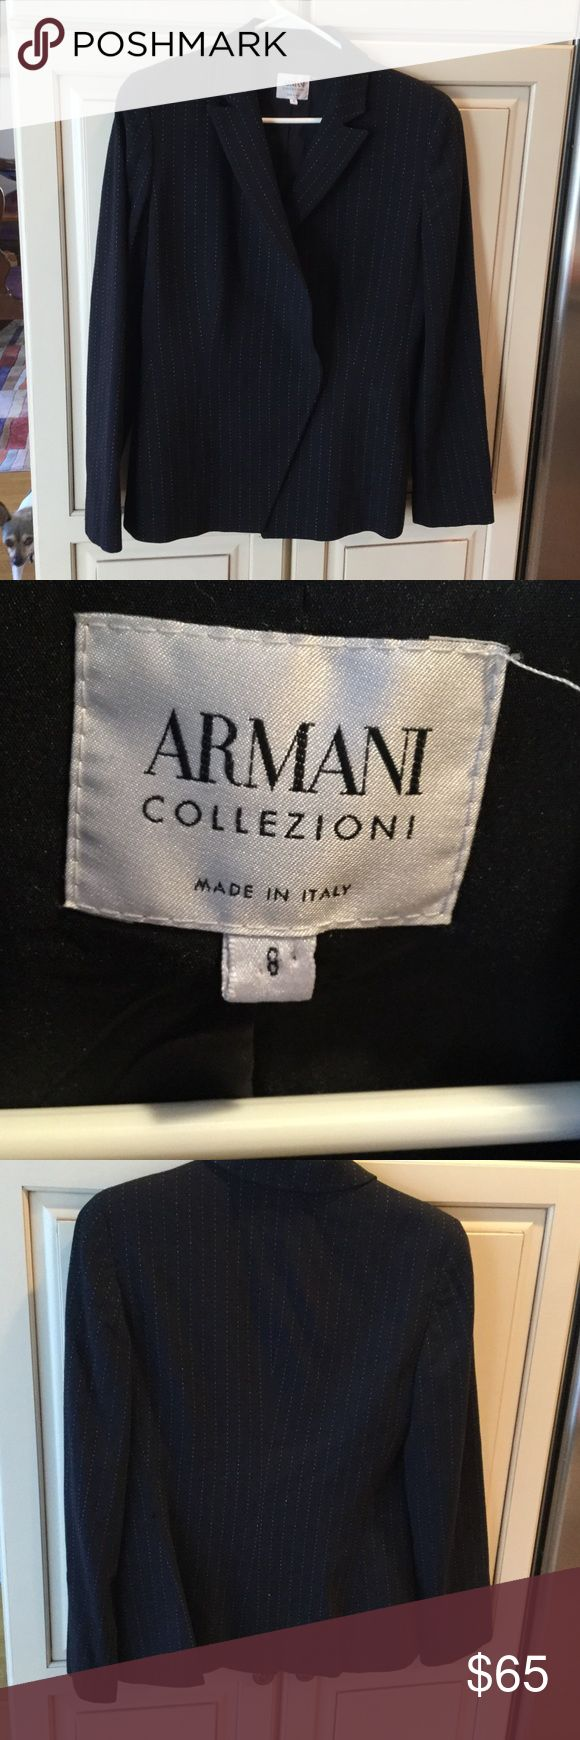 Vintage Armani Collezione Blazer Jacket sz 8 Fully lined. Black with broken white pinstripe.  Internal buttons/ hook closure. Wool blend.  Notched lapel. Matching skirt and pants soon to be listed. Vintage 80s. Very nice vintage shape Jackets & Coats Blazers